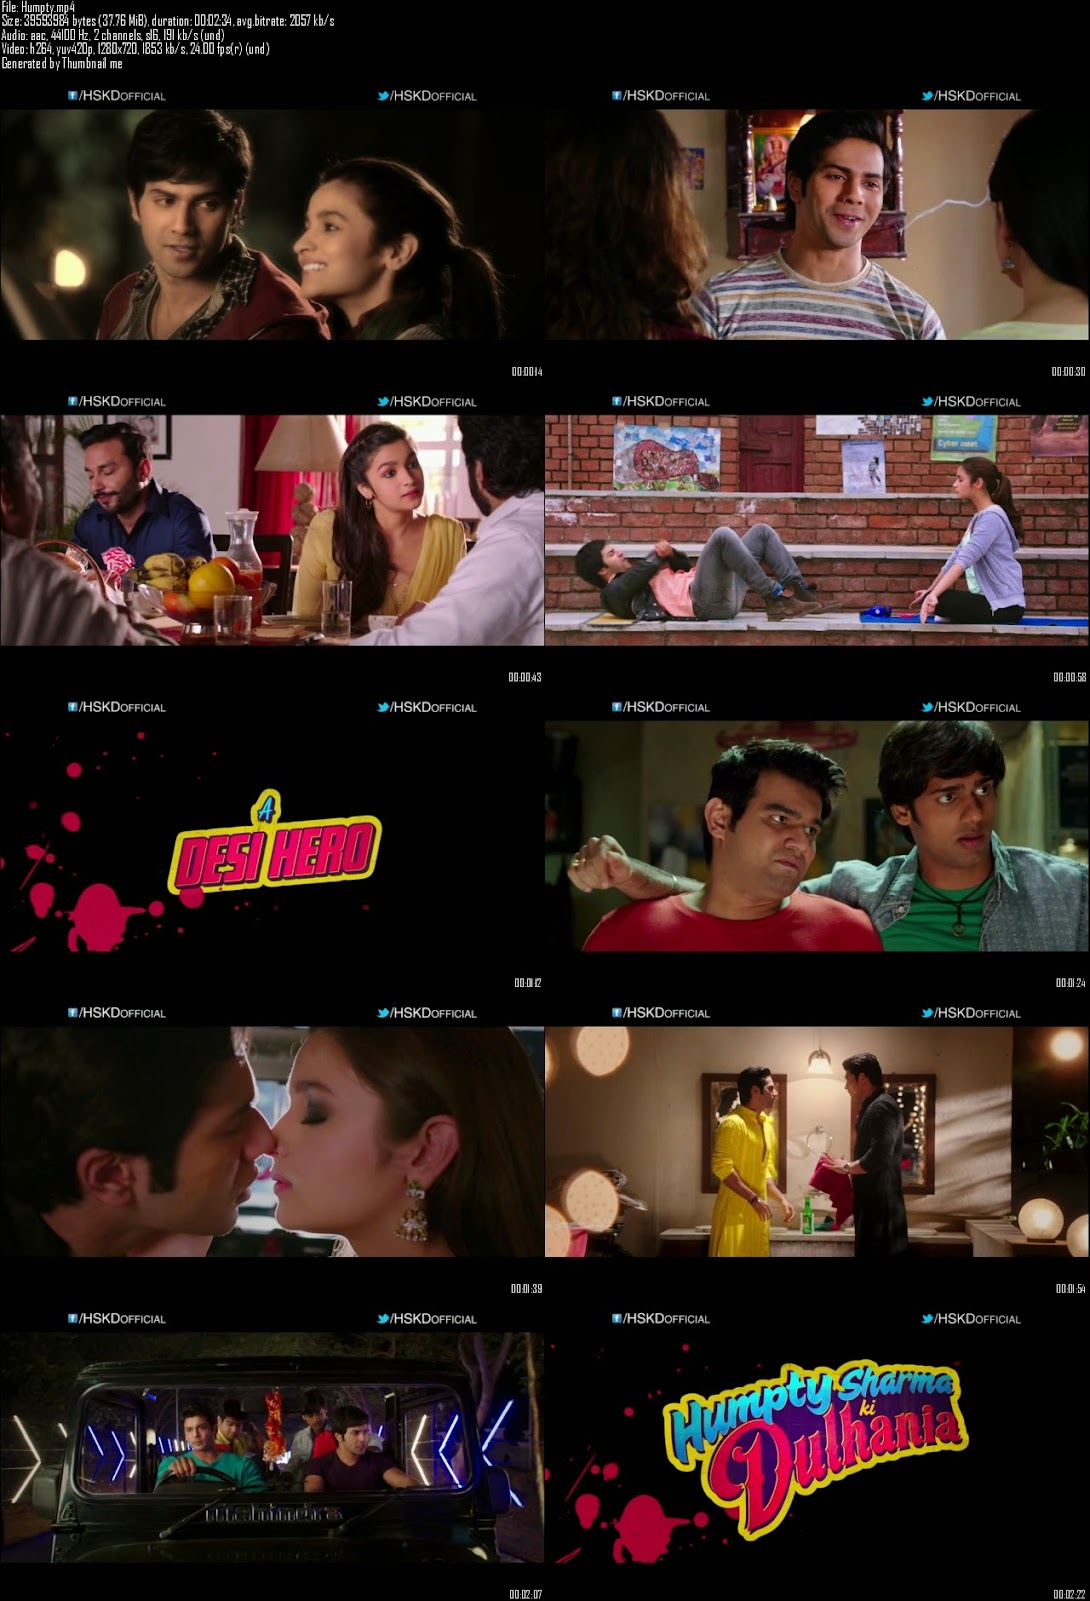 Mediafire Resumable Download Link For Teaser Promo Of Humpty Sharma Ki Dulhania (2014)